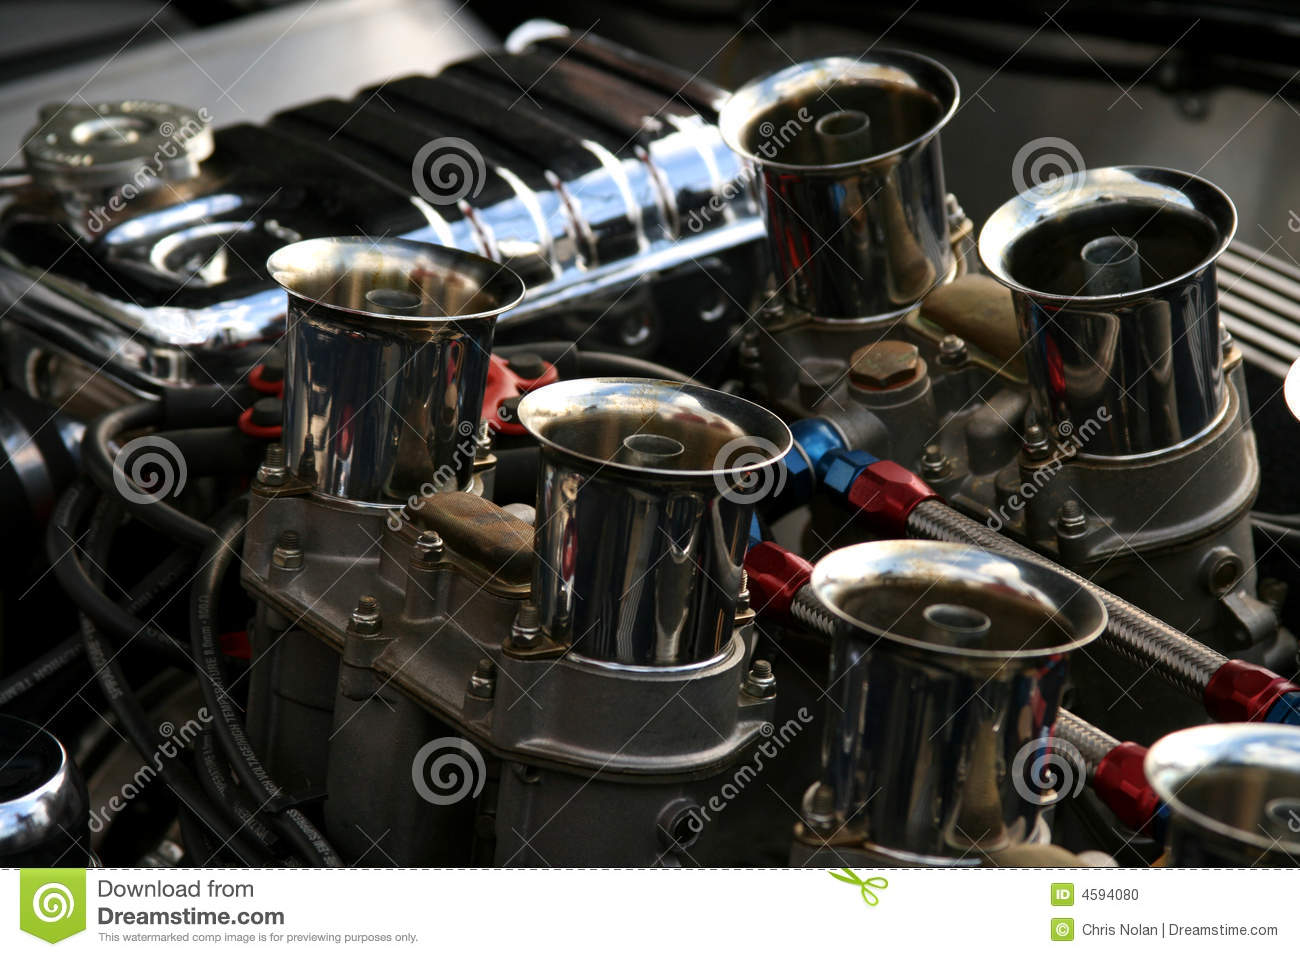 Chrome engine on classic american car stock photo image for New american classic